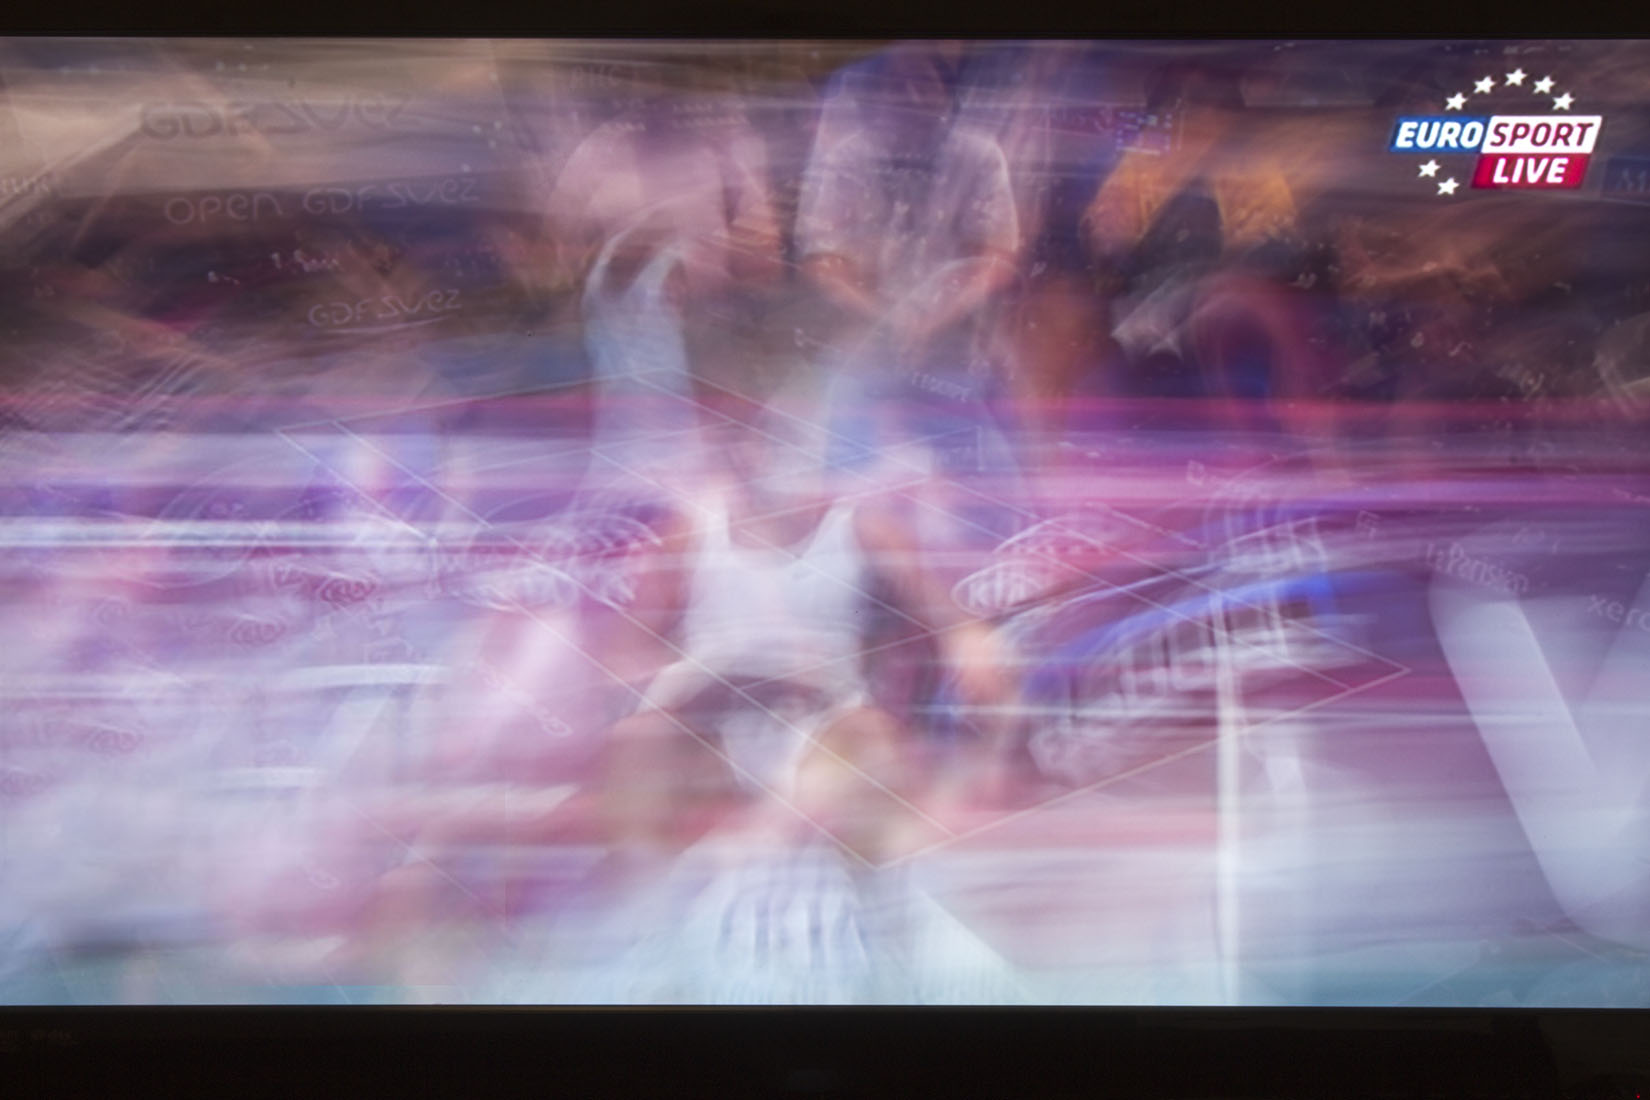 Television, Eurosport Live, tennis, abstraction, movement